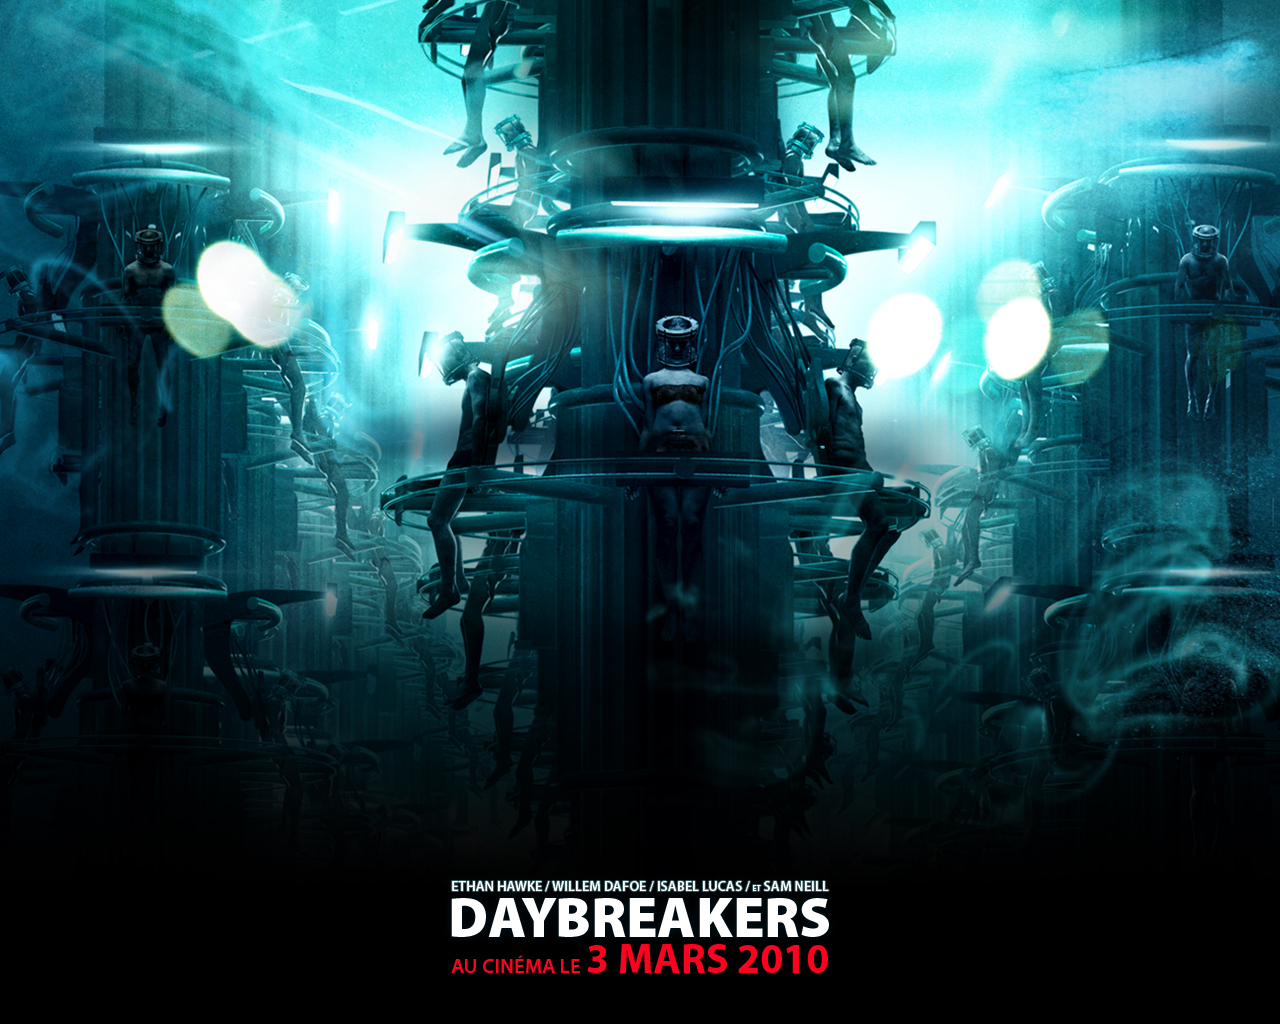 Daybreakers_01_1280x1024.jpg